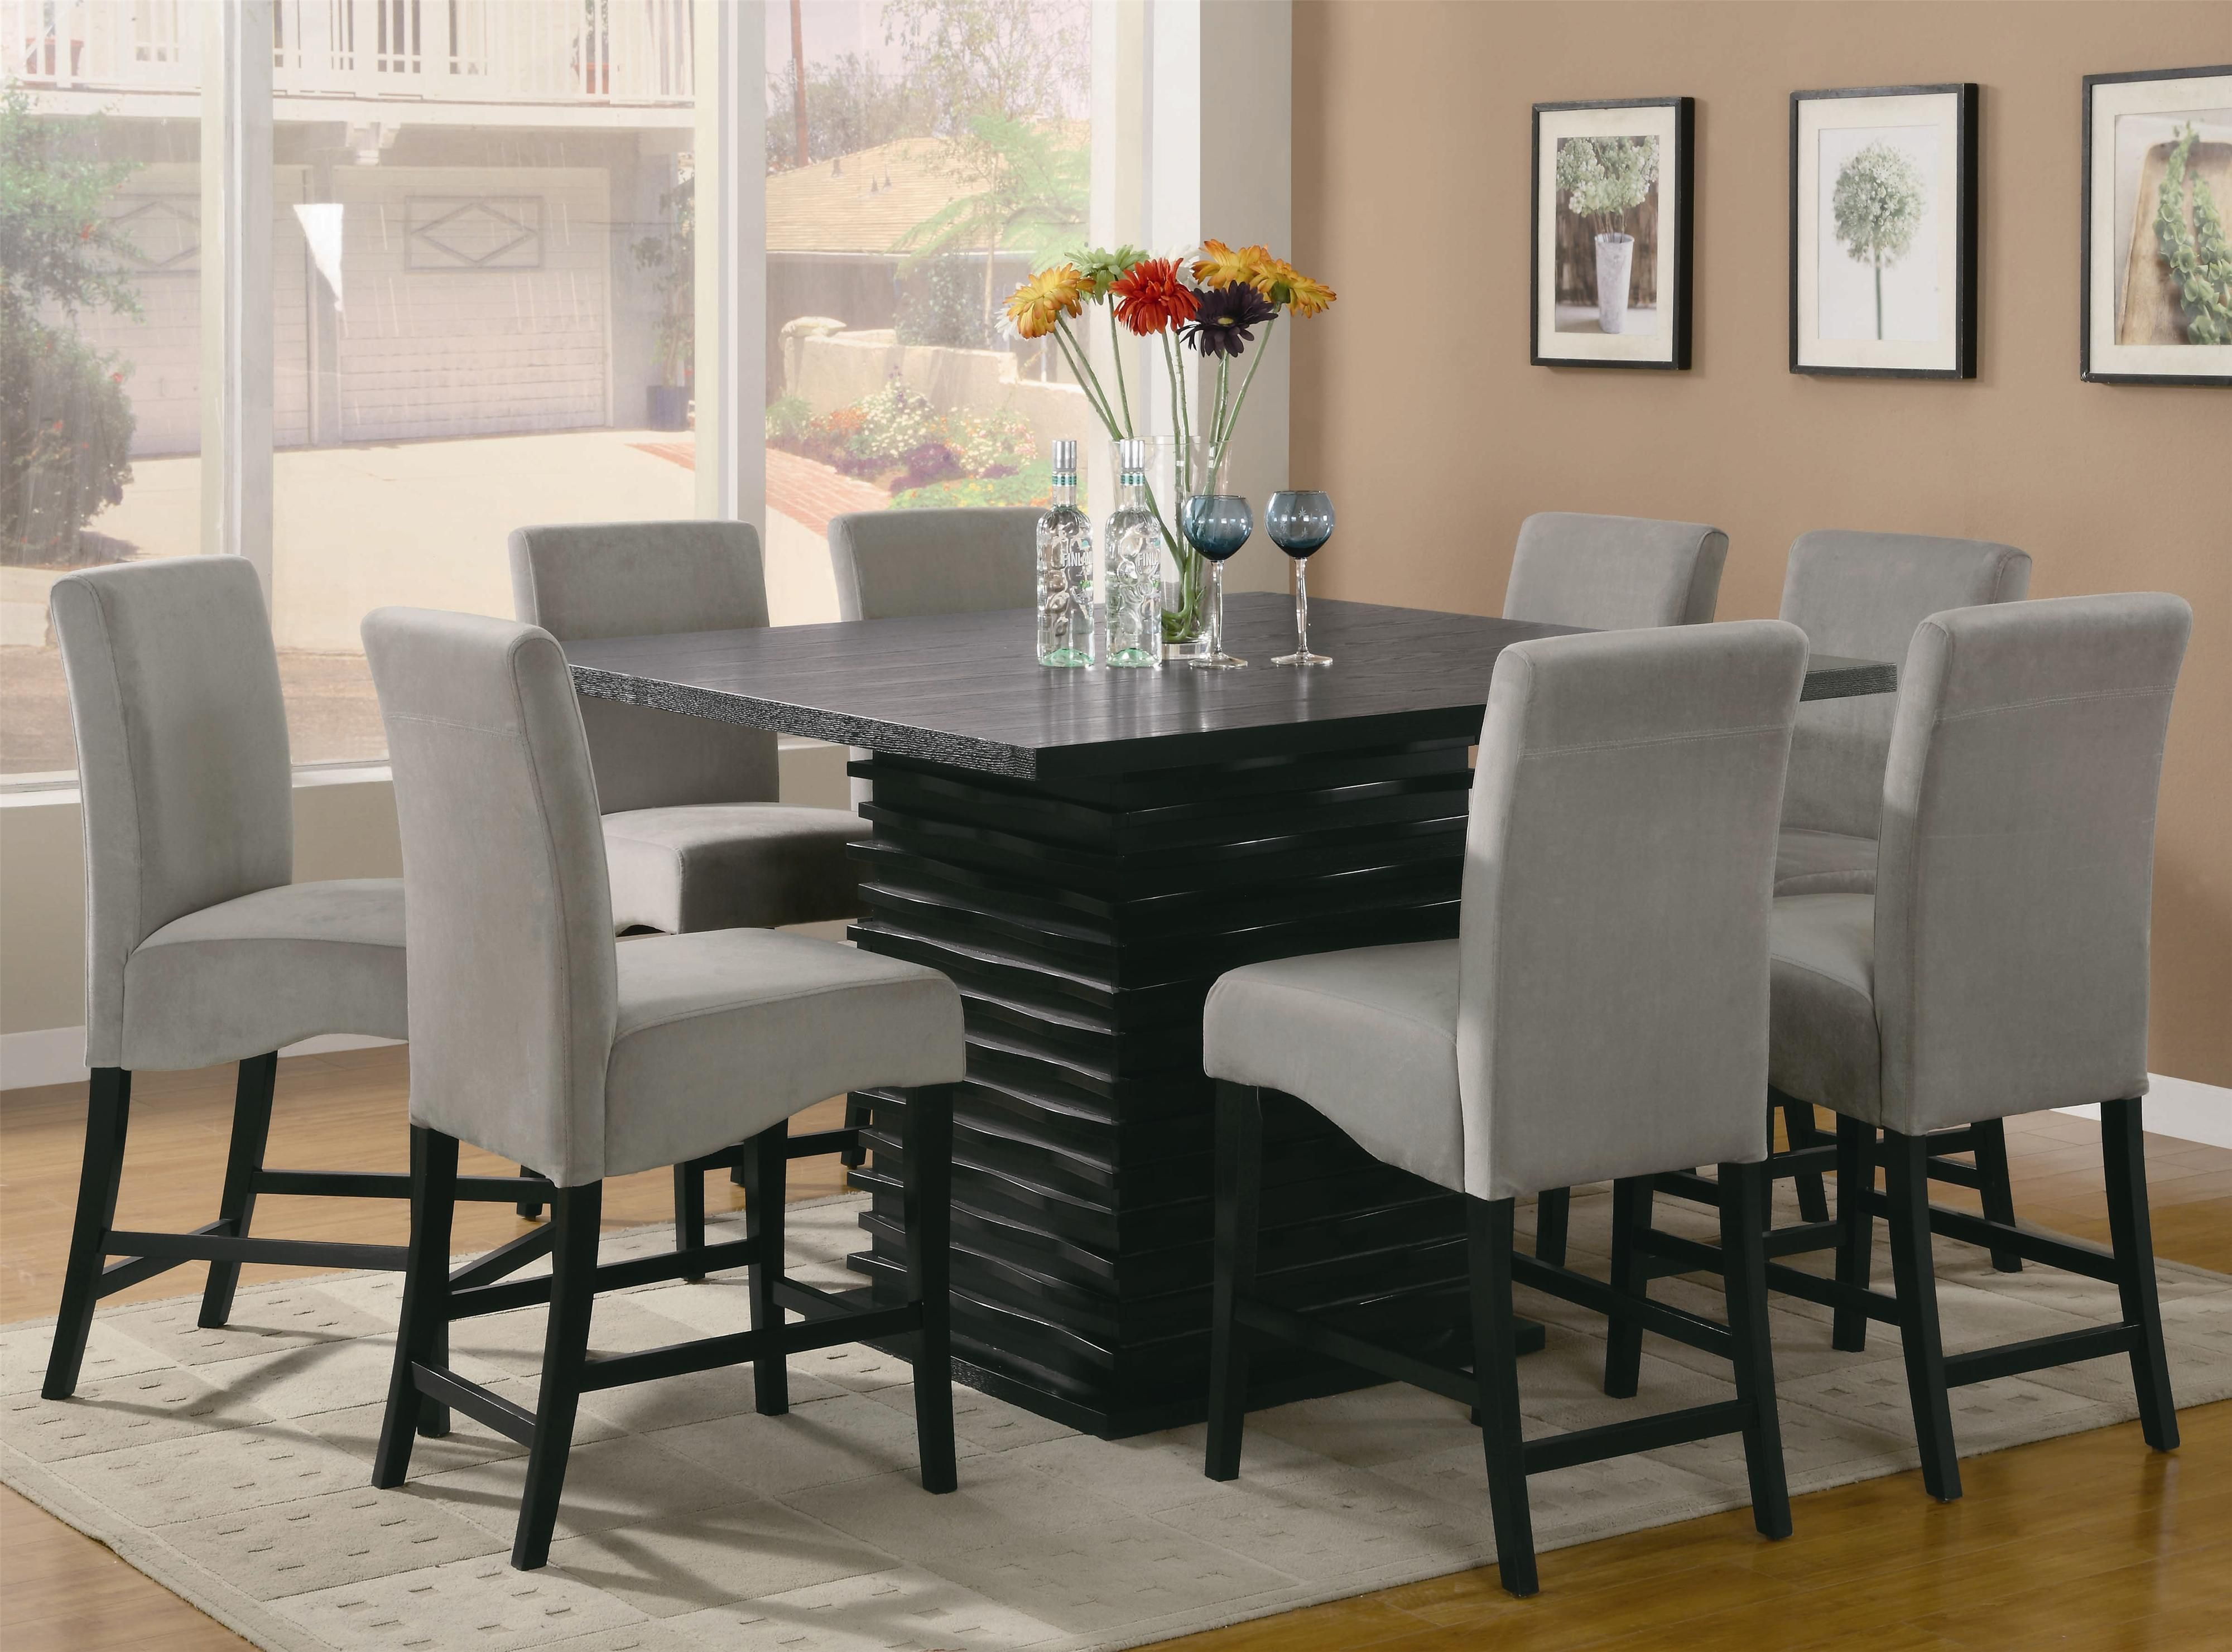 3333e8b09fd Stanton 9 Piece Table and Chair Set by Coaster I want this!!!!! This is  PERFECT!